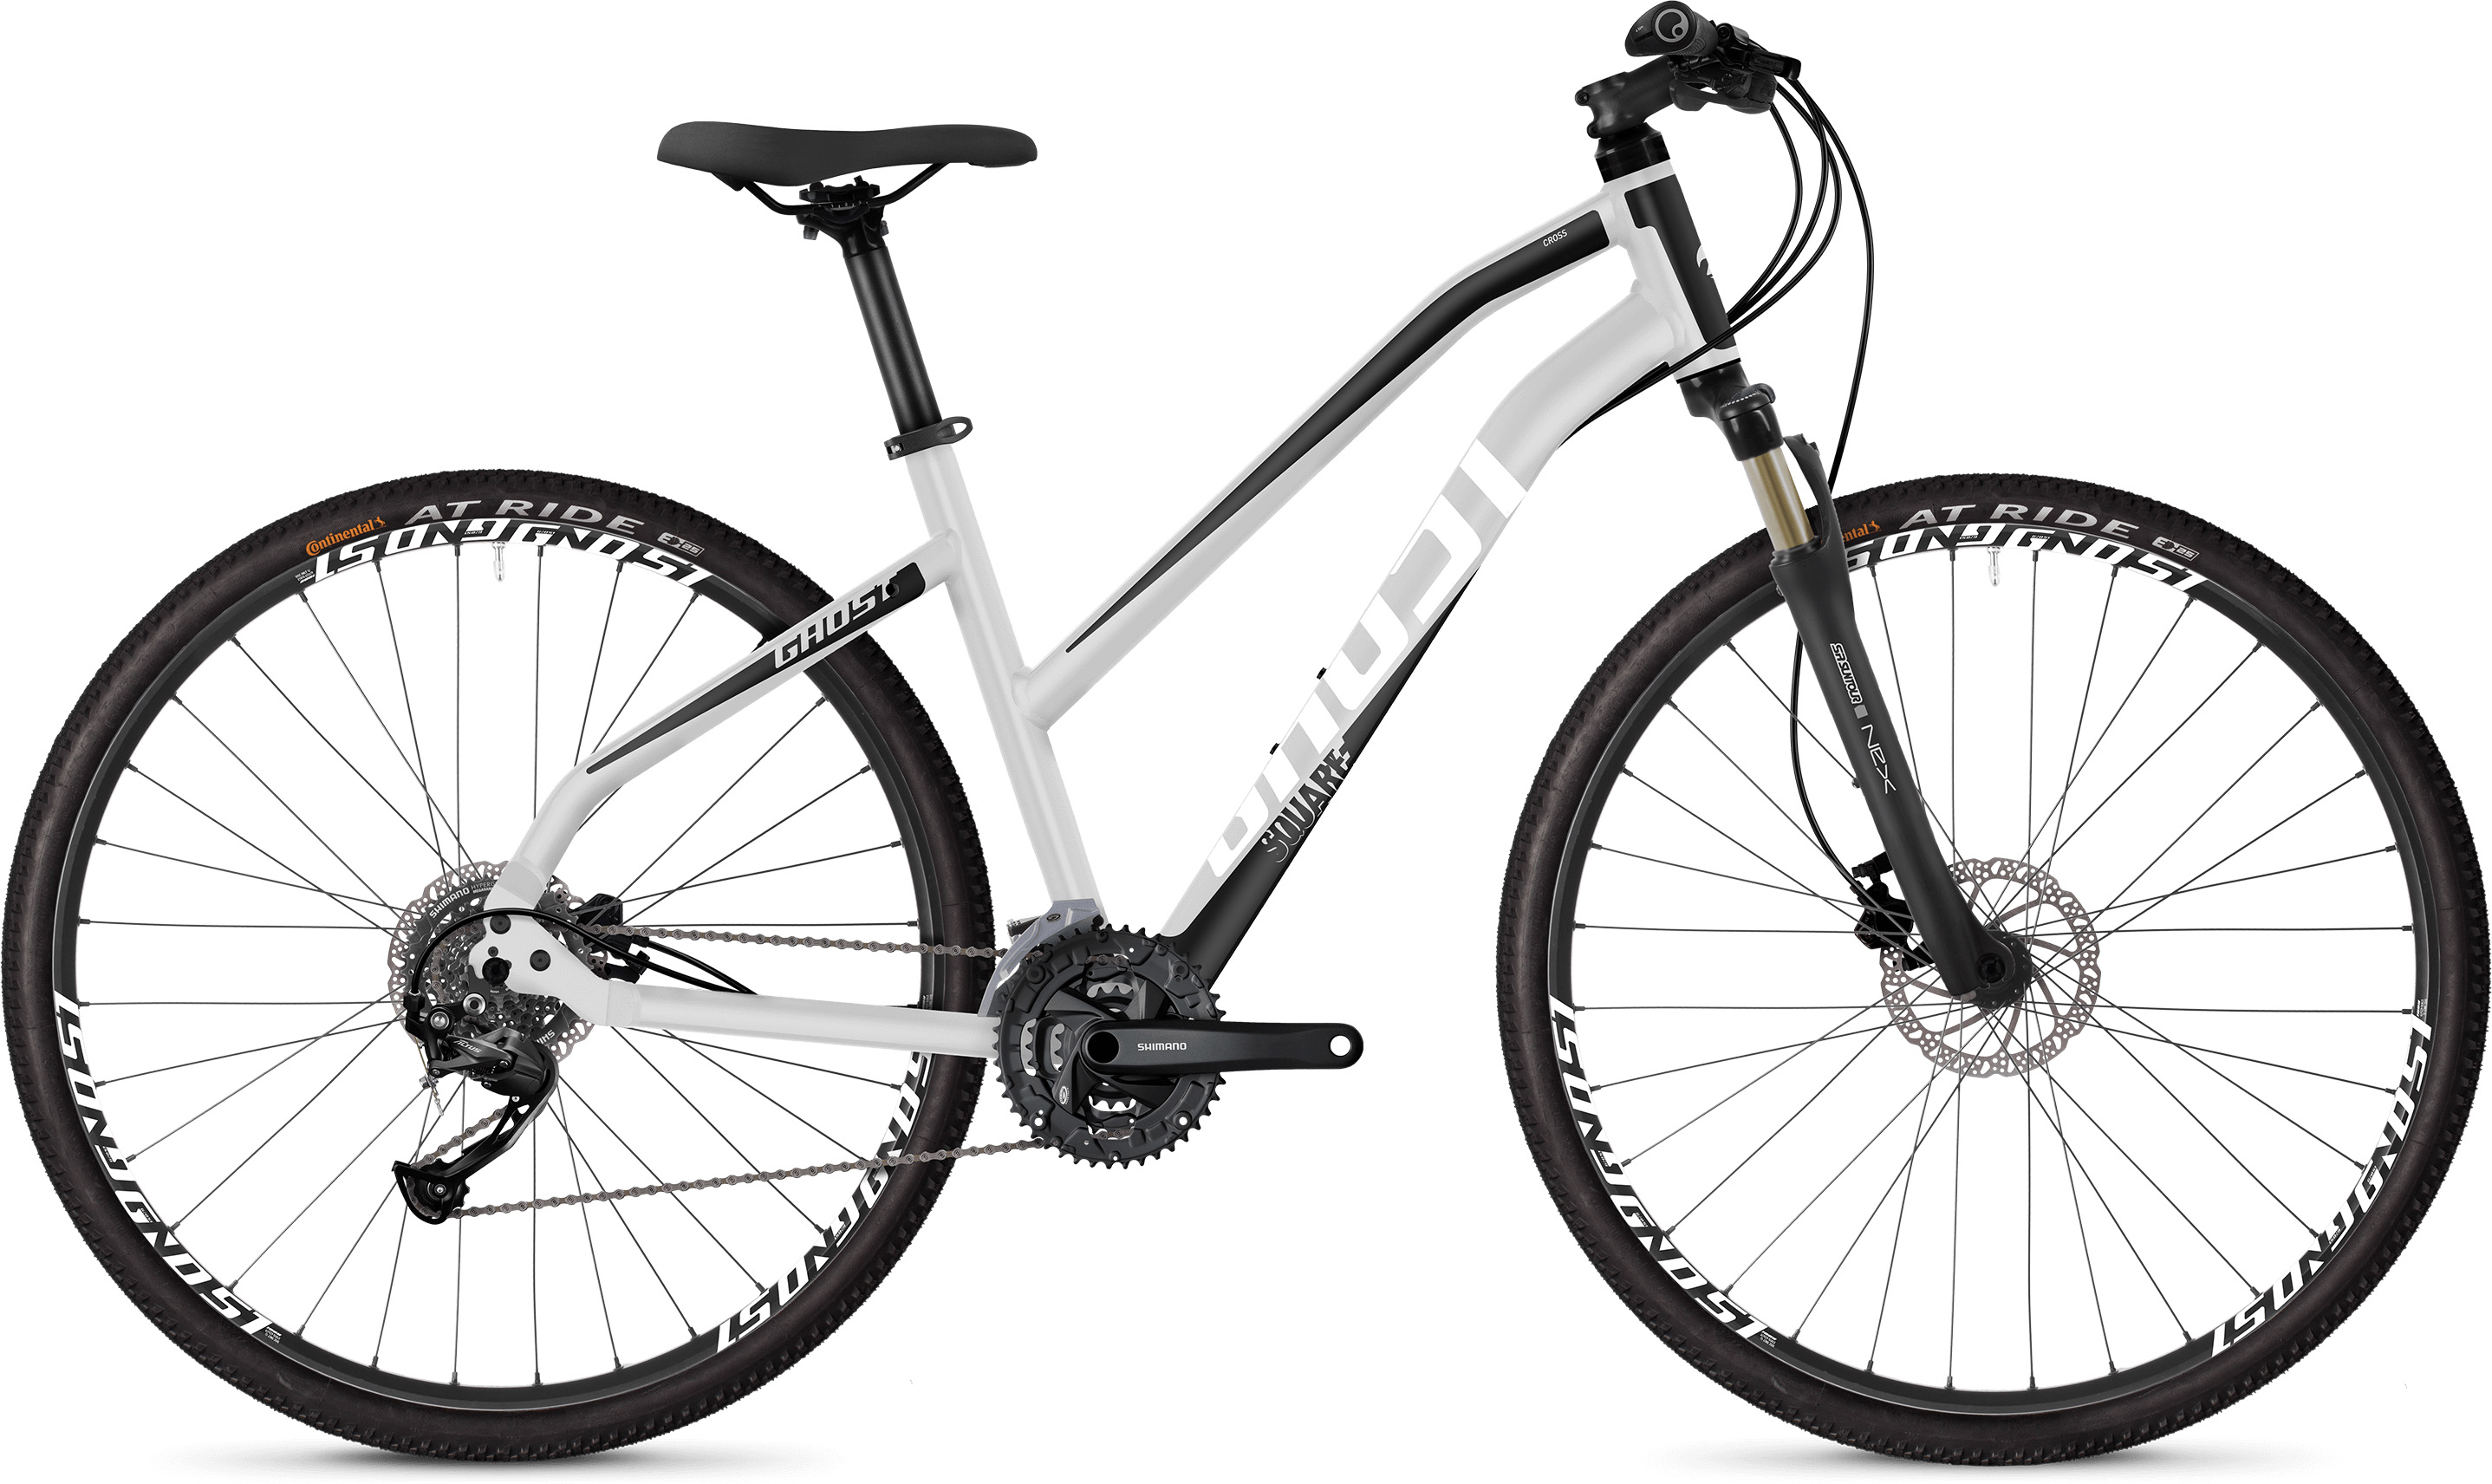 Ghost Square Cross 1.8 Women's Bike (2019) | City-cykler